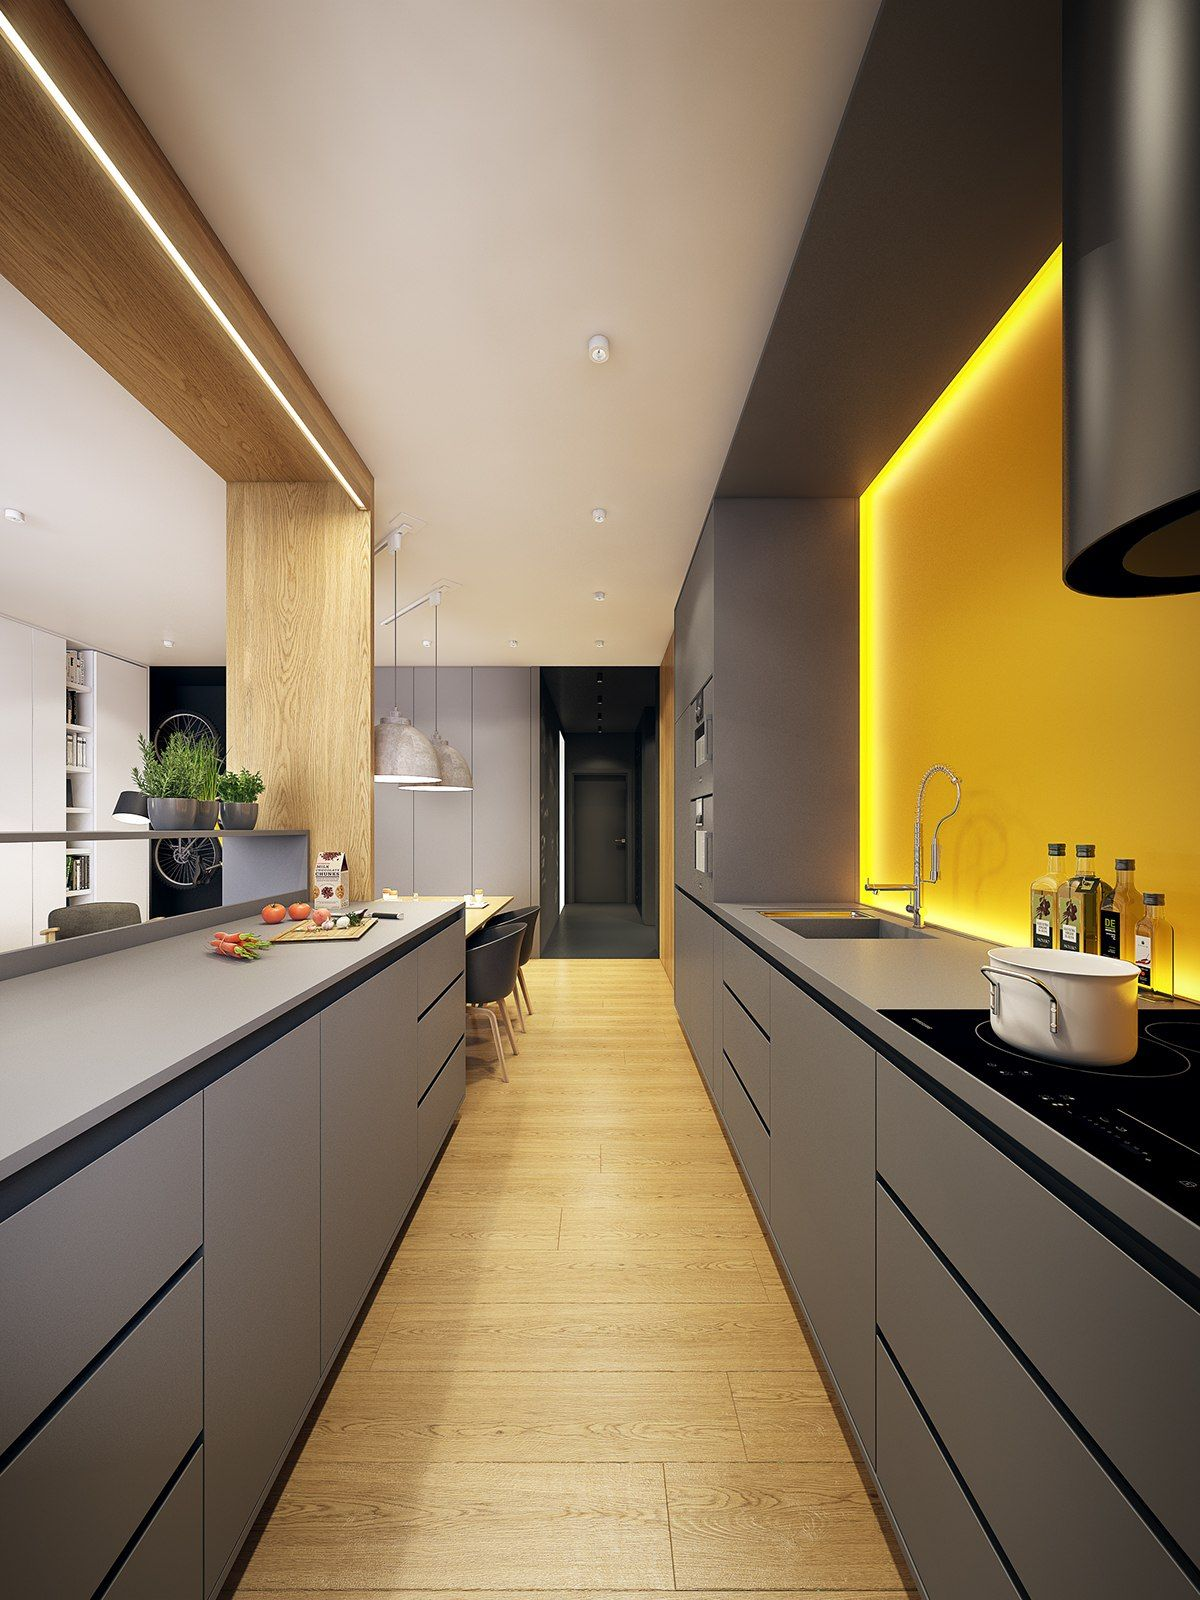 appartement moderne scandinave ing nieux cuisine pinterest eclairage indirect jaune et gris. Black Bedroom Furniture Sets. Home Design Ideas